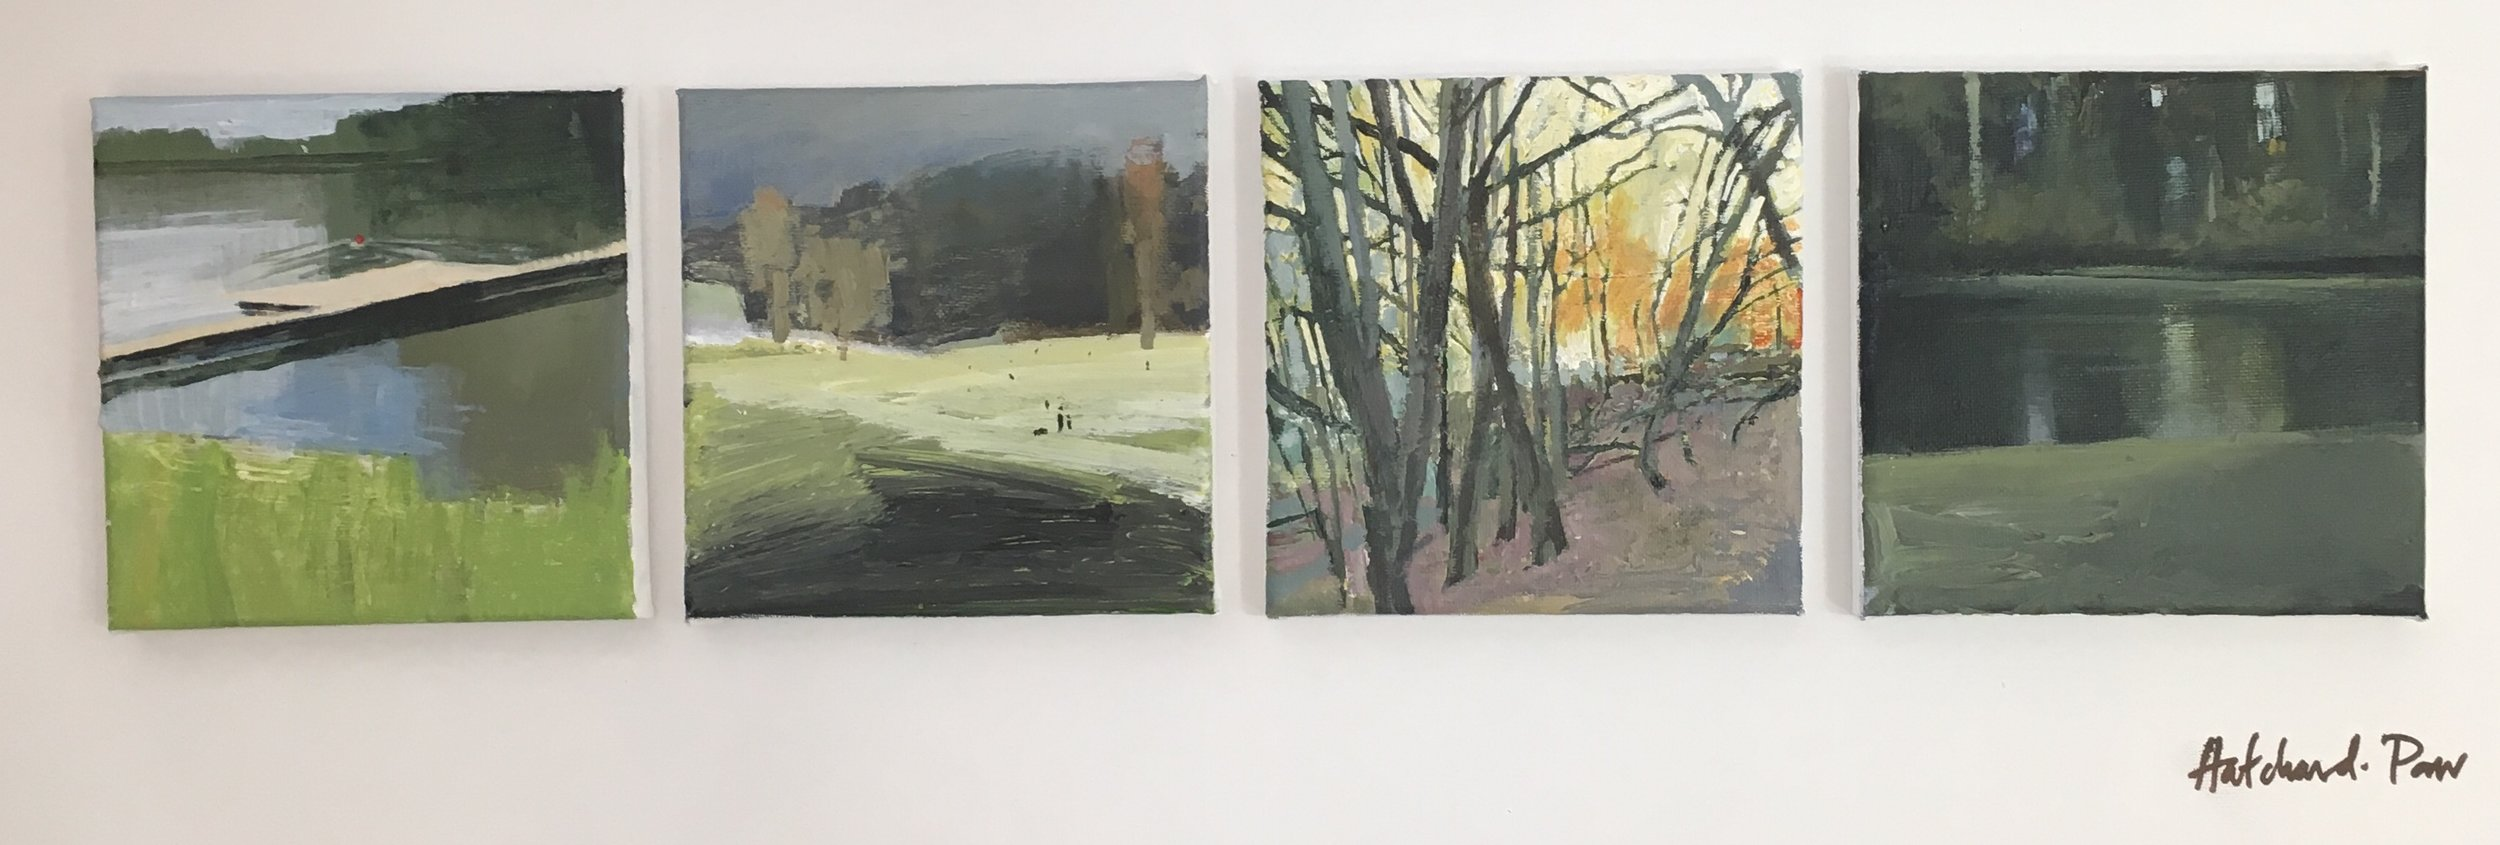 Heath Series (I,II), Acrylic on canvas, 30 x 60 cm, £650 – £100 each